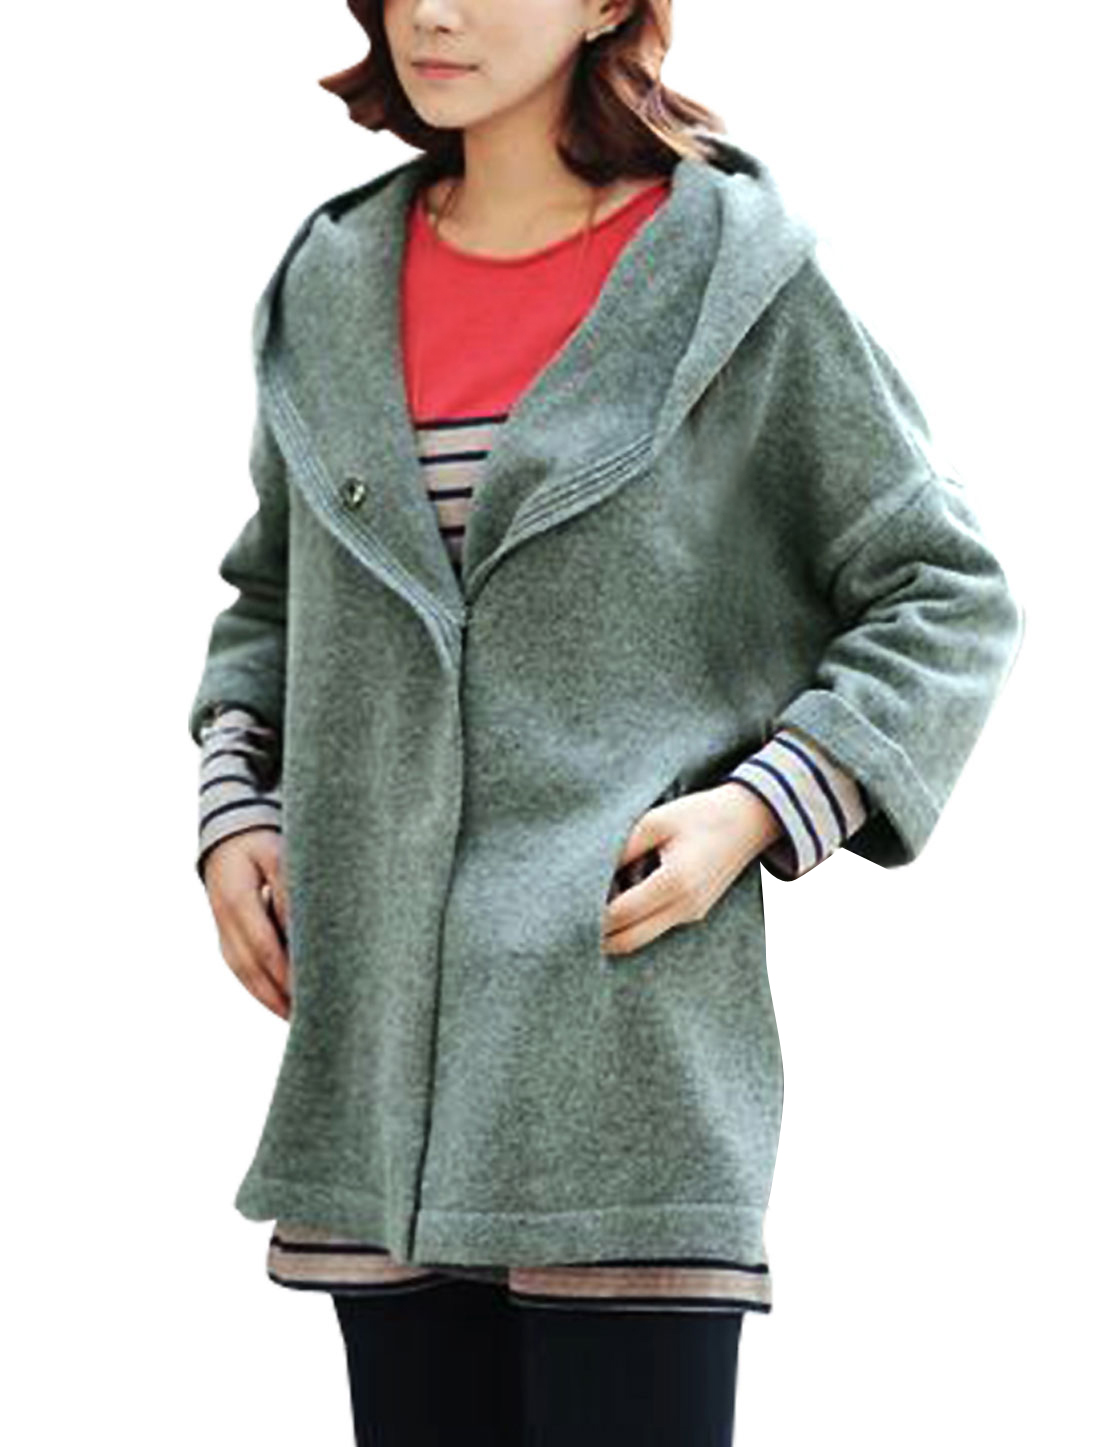 Women Olive Green XL Hoodies Drawstring Solid Color Warm Cardigan Jacket